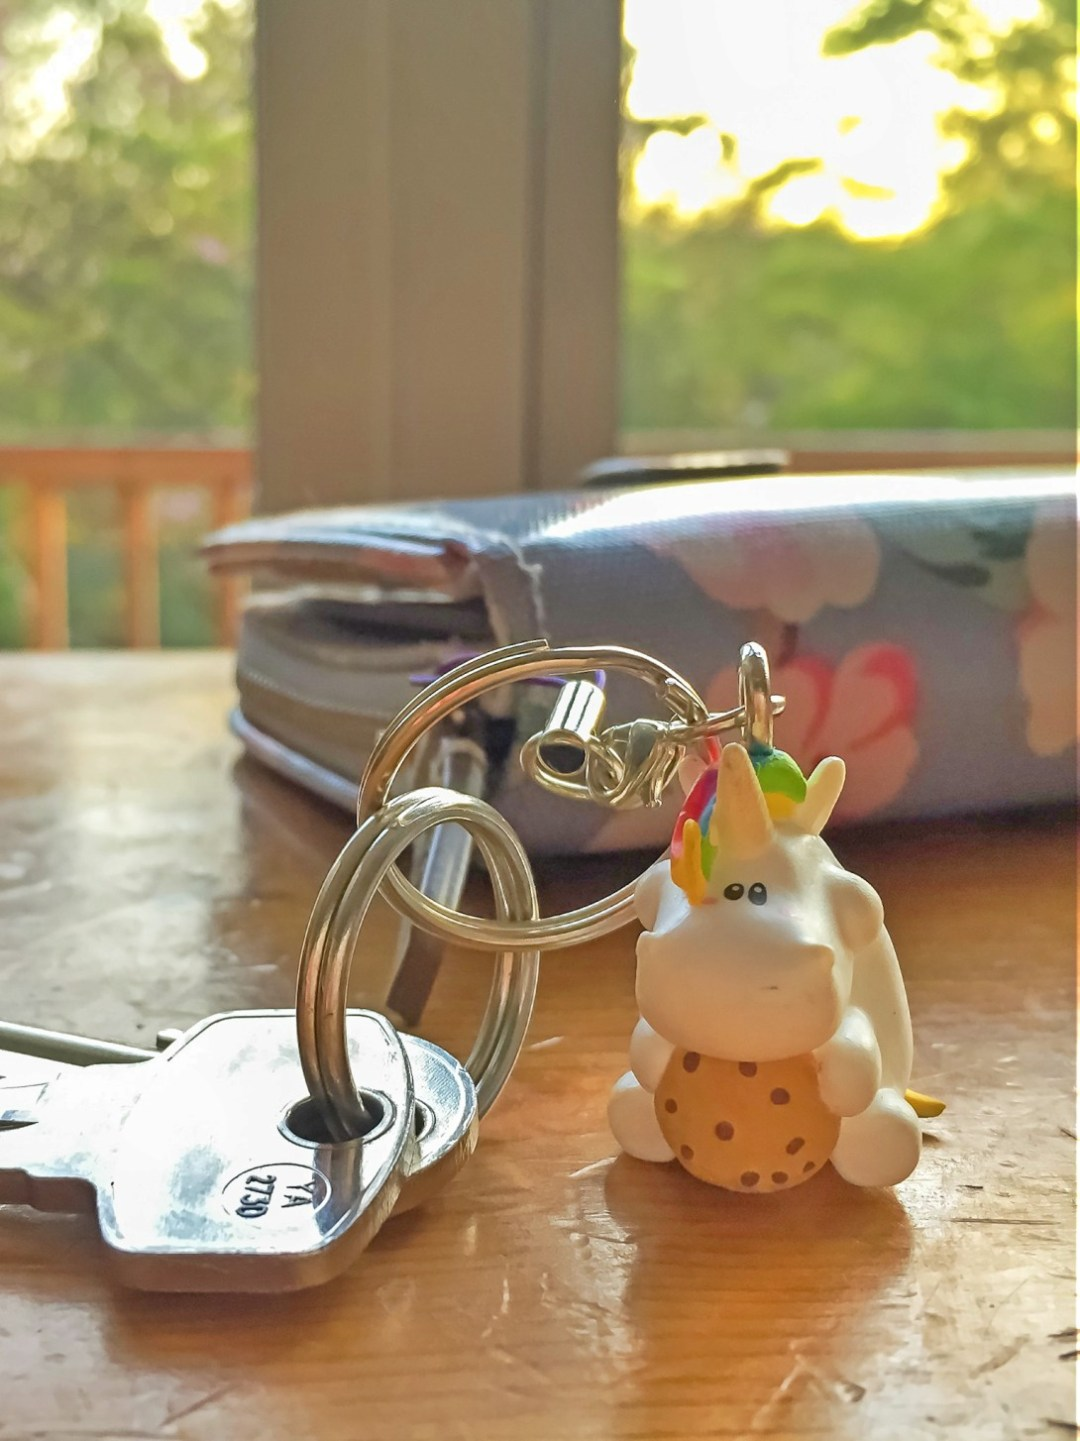 A photograph of a Bullyland Chubby Unicorn Key Chain with some keys attached and next to a ladies' purse - Bullyland Chubby Unicorn Figurines - A Review - Mrs H'sfavourite thins